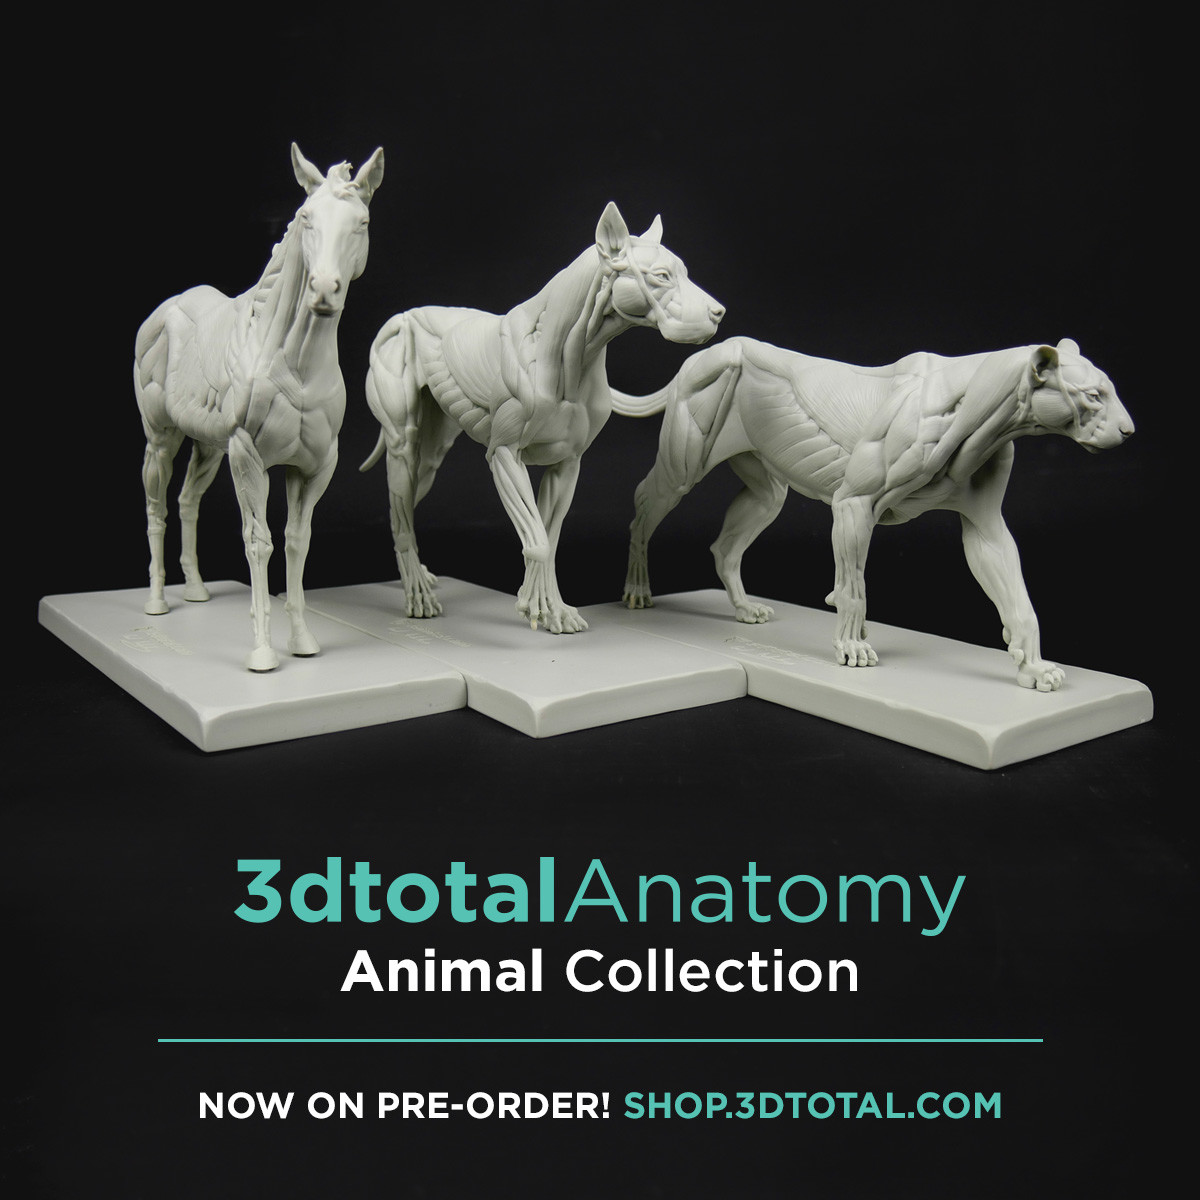 All the family (Equine, Canine and Feline) : https://shop.3dtotal.com/3dtotal-anatomy-3-piece-set-of-animal-figures.html